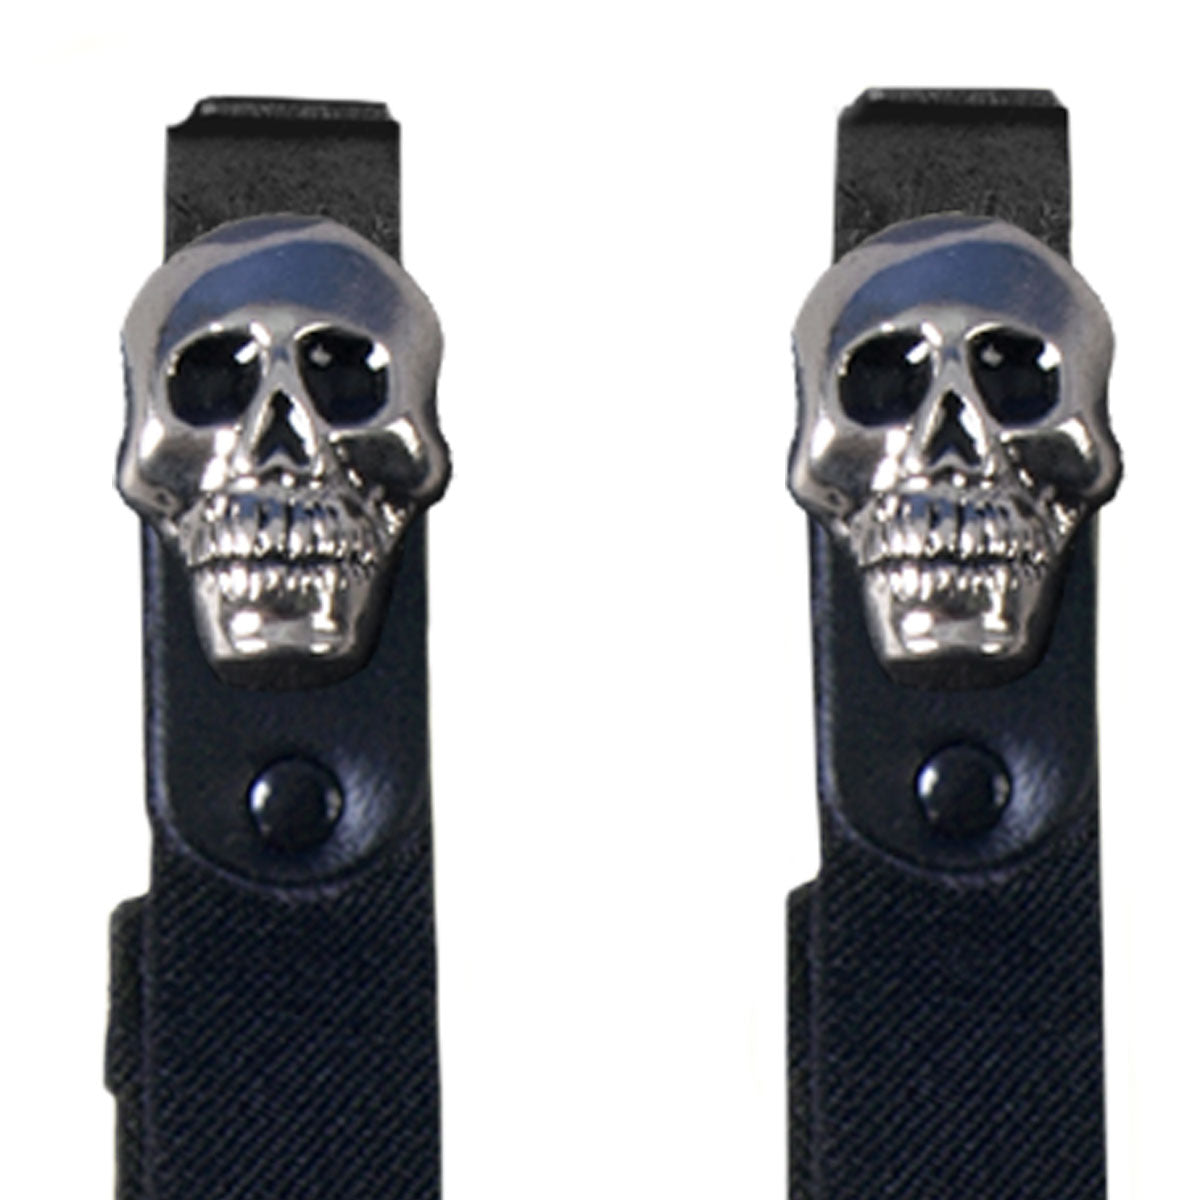 Hot Leathers Skull Motorcycle Riding Pant Clips